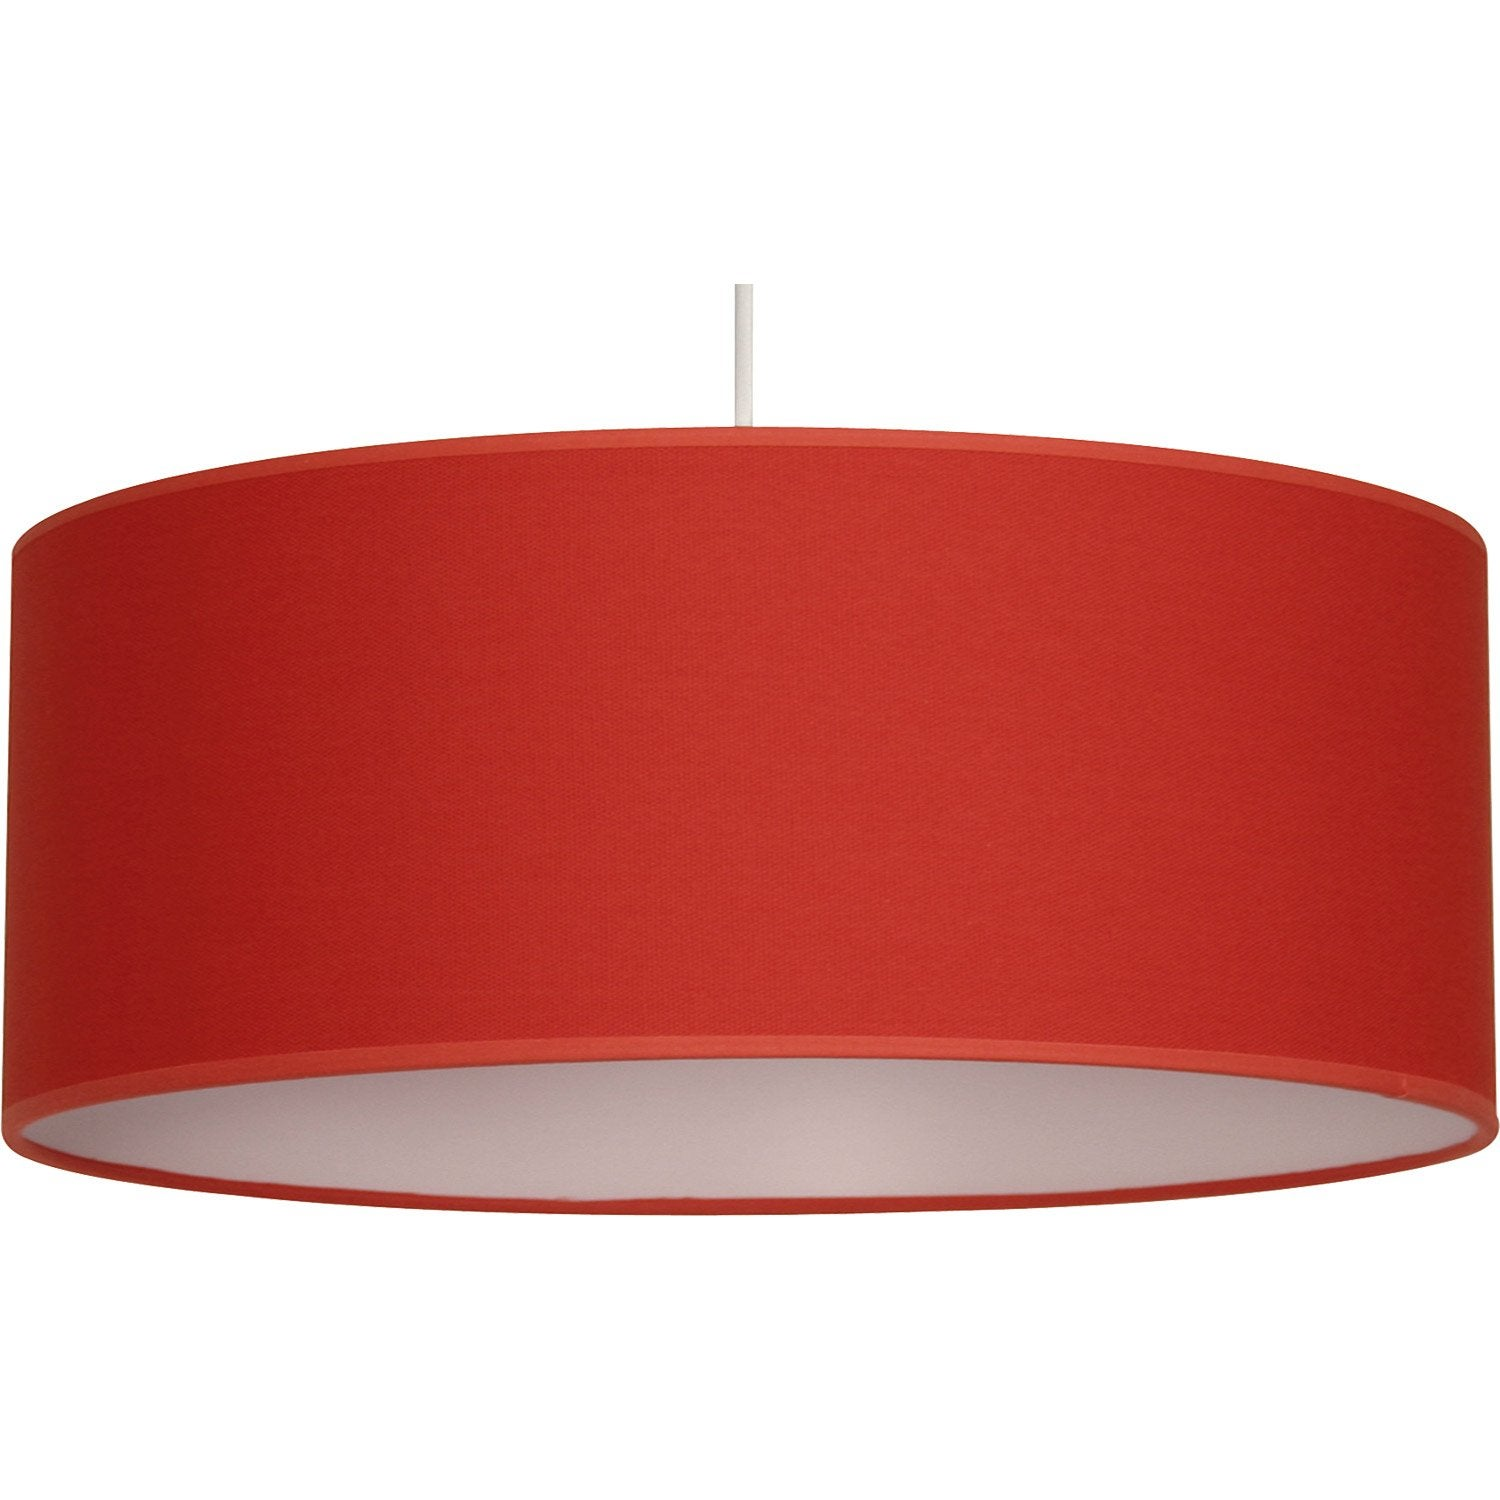 Suspension e27 natt coton rouge rouge n 5 1 x 60 w for Suspension rouge